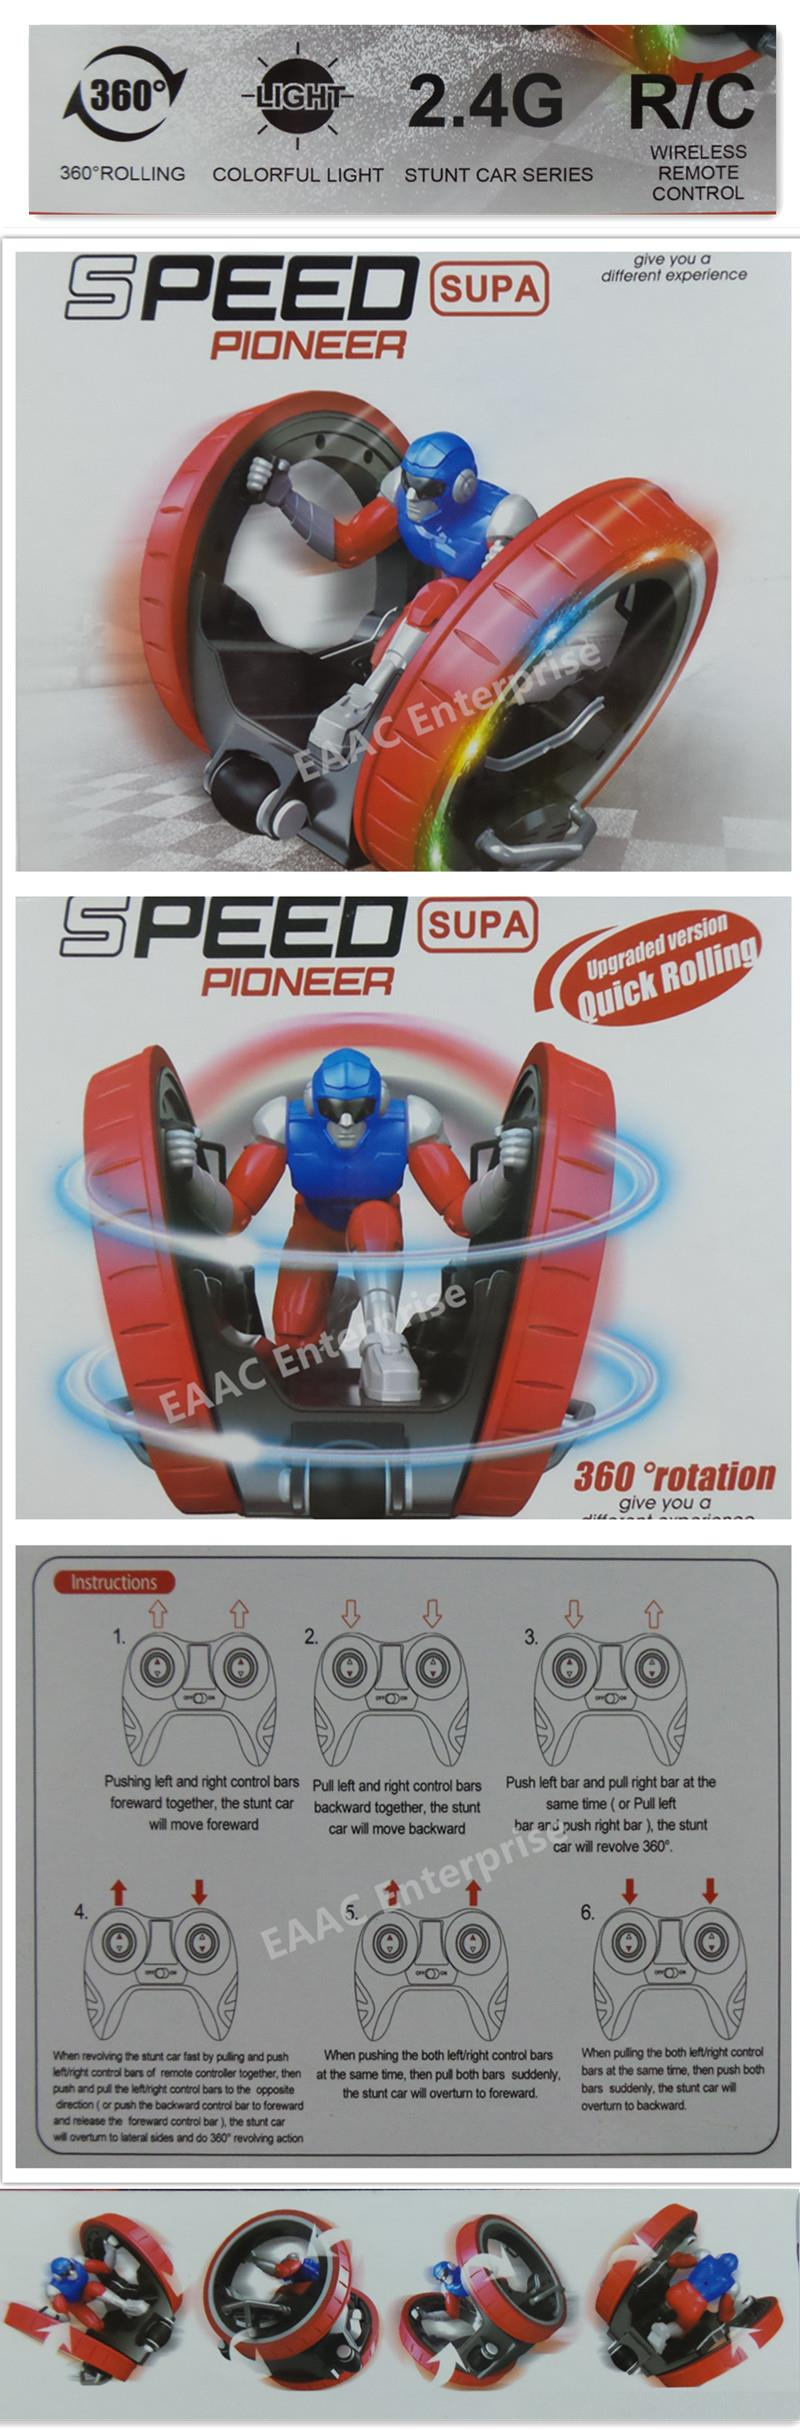 2.4GHz RC Speed Supa Pioneer 6 in 1 Stunt Car 360 Rolling with Light